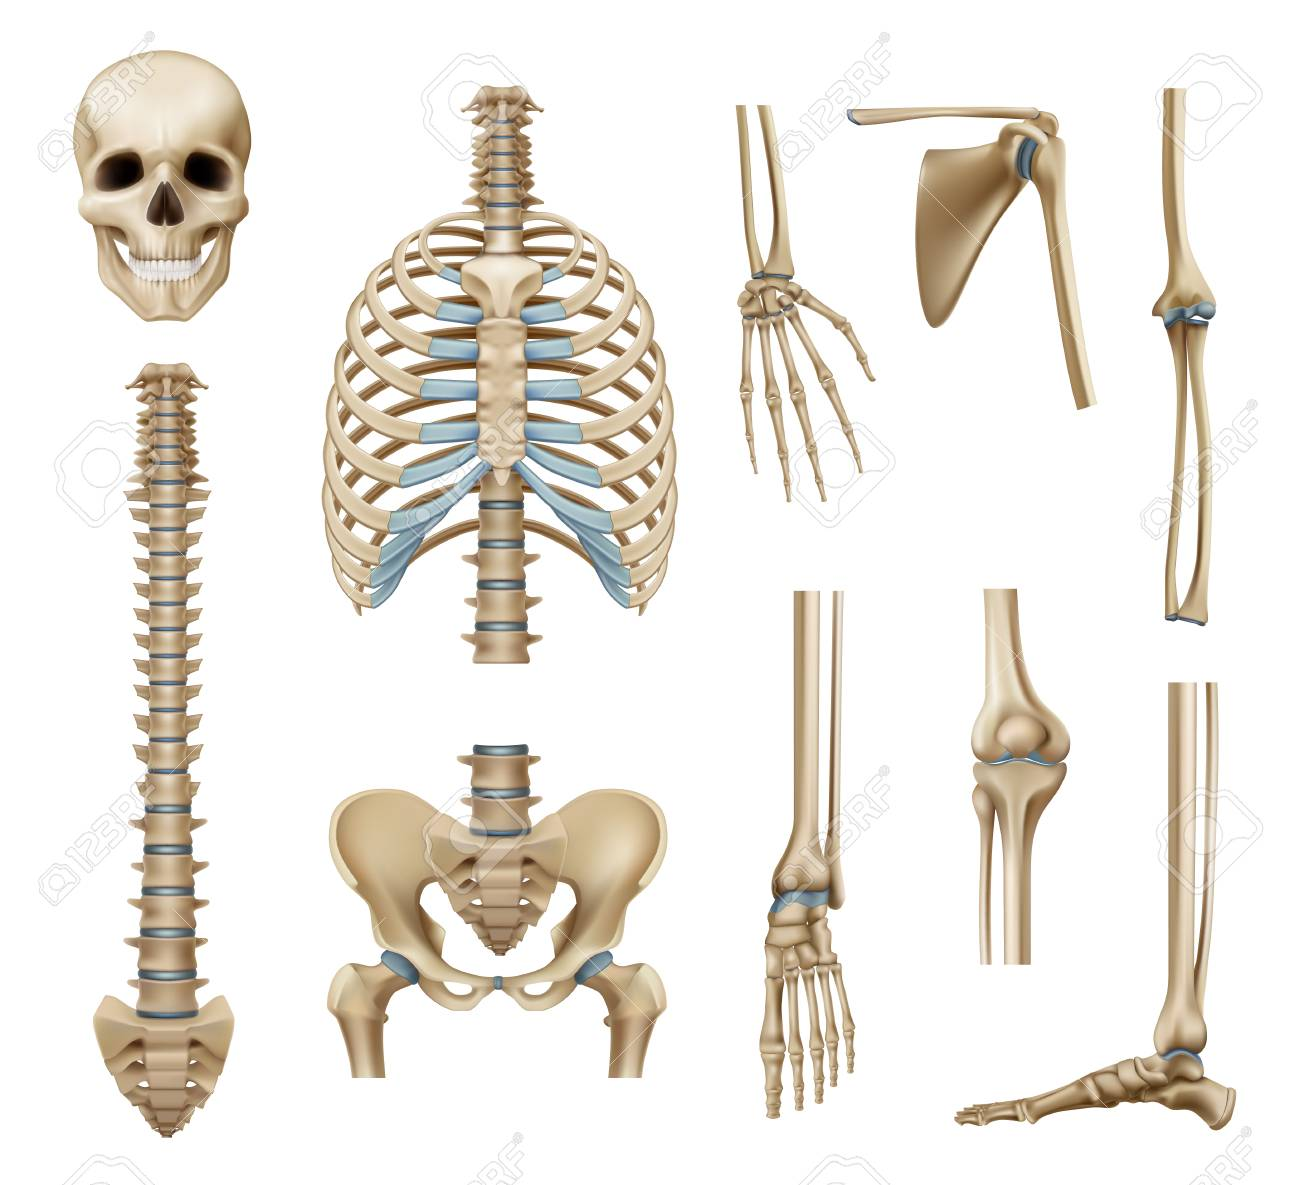 hight resolution of realistic human skeleton parts set with skull spine scapula bones of pelvis and limbs isolated vector